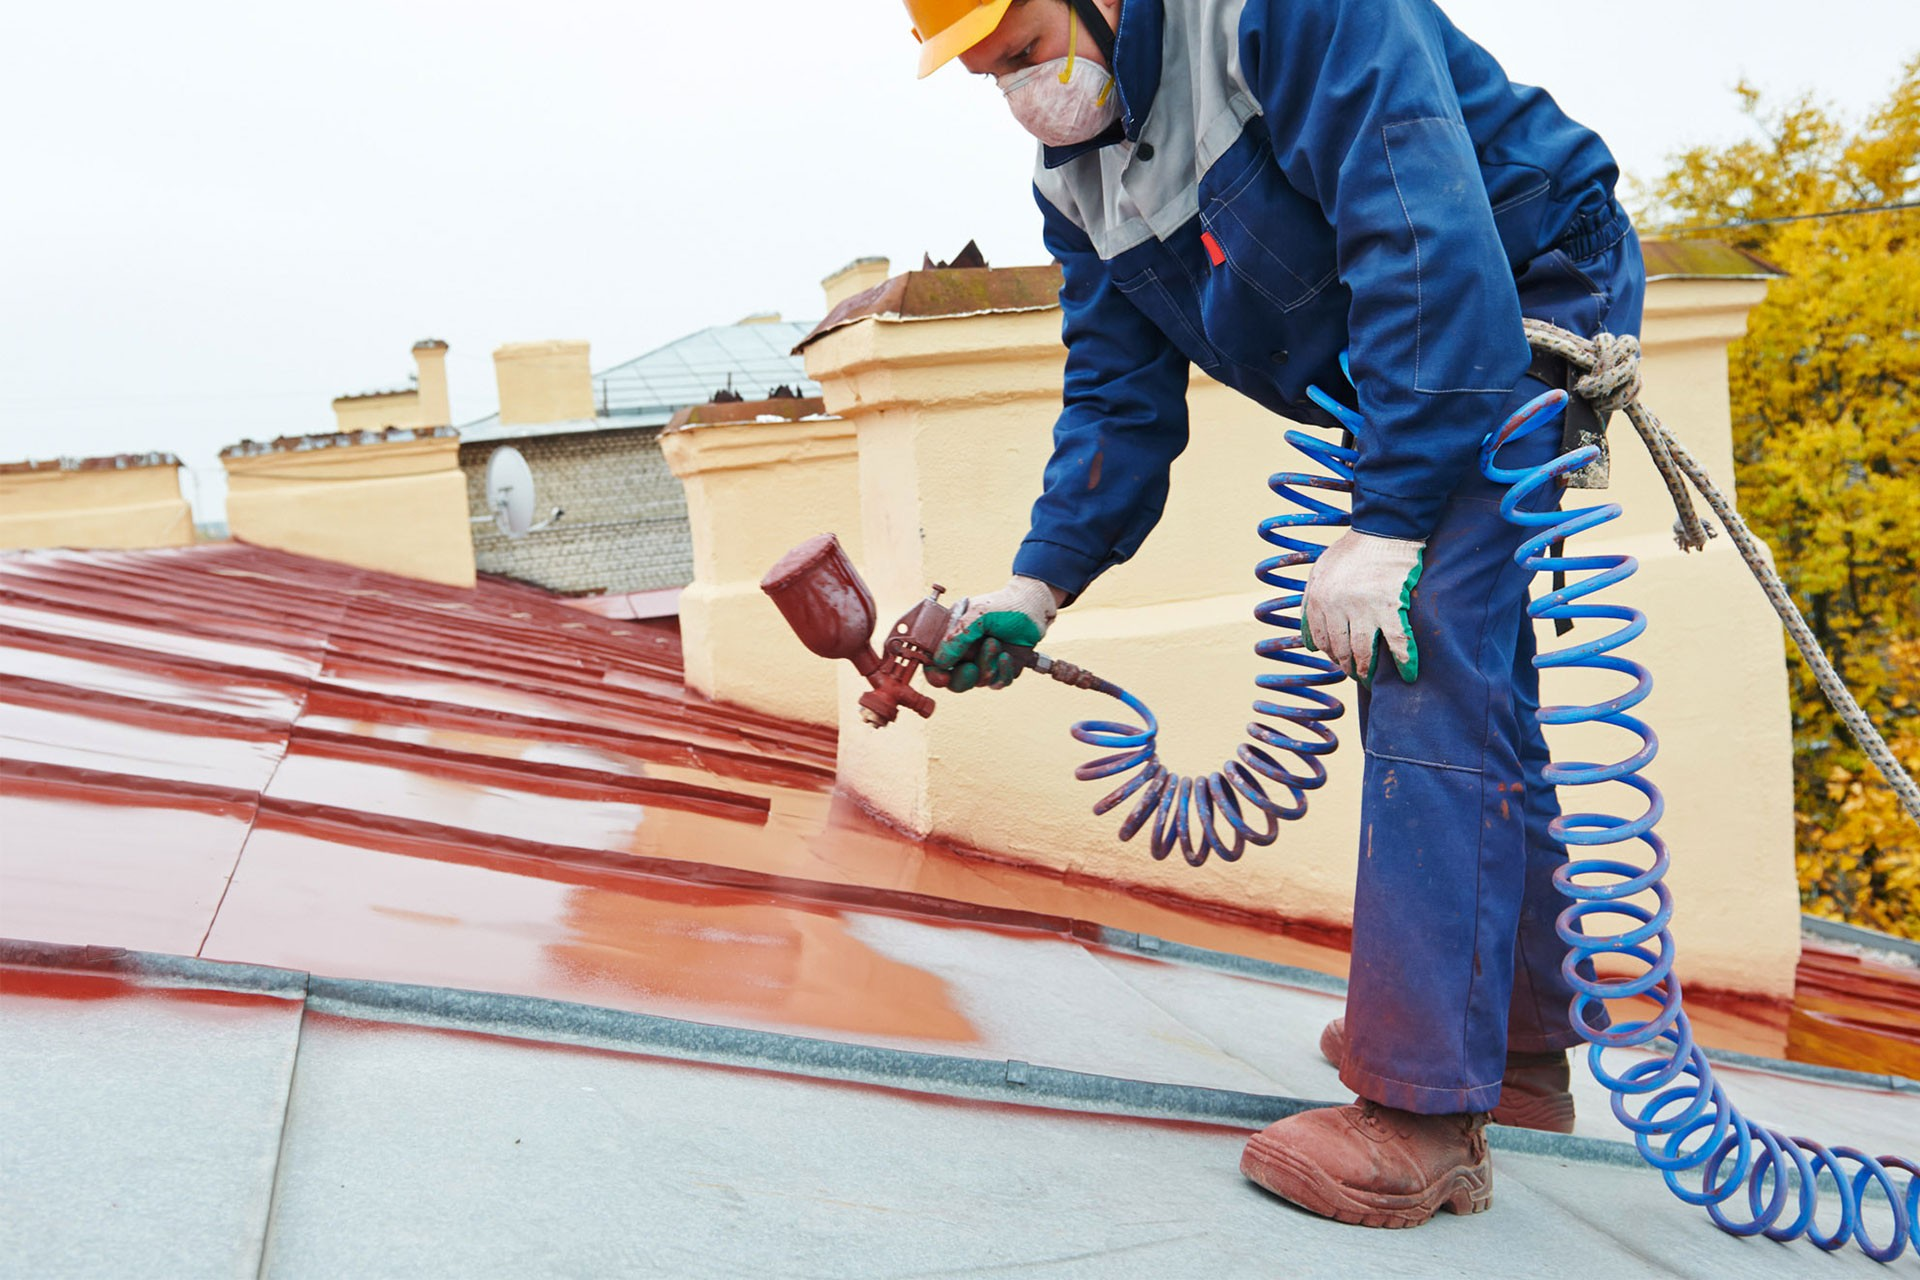 Lakeport-Longview TX Professional Painting Contractors-We offer Residential & Commercial Painting, Interior Painting, Exterior Painting, Primer Painting, Industrial Painting, Professional Painters, Institutional Painters, and more.